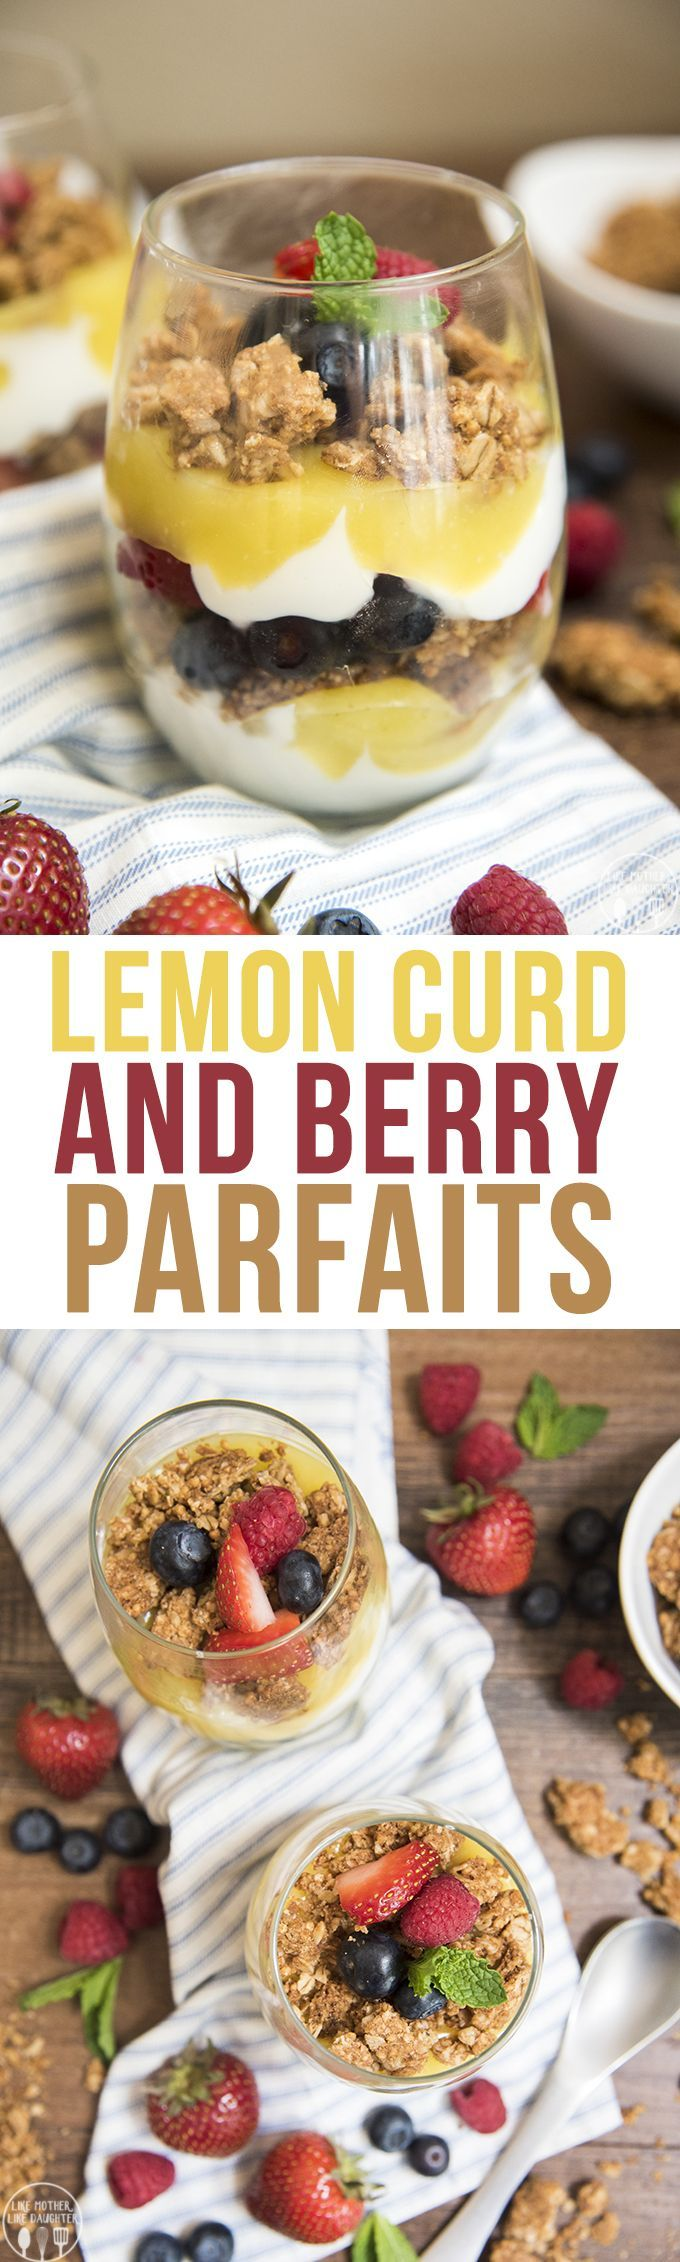 Lemon Curd and Berry Parfaits - These lemon curd and berry parfaits are perfect for a delicious and refreshing breakfast, or light snack! With layers of yogurt, lemon curd, fresh berries and granola. #BeGreatOutThere #ad #IC